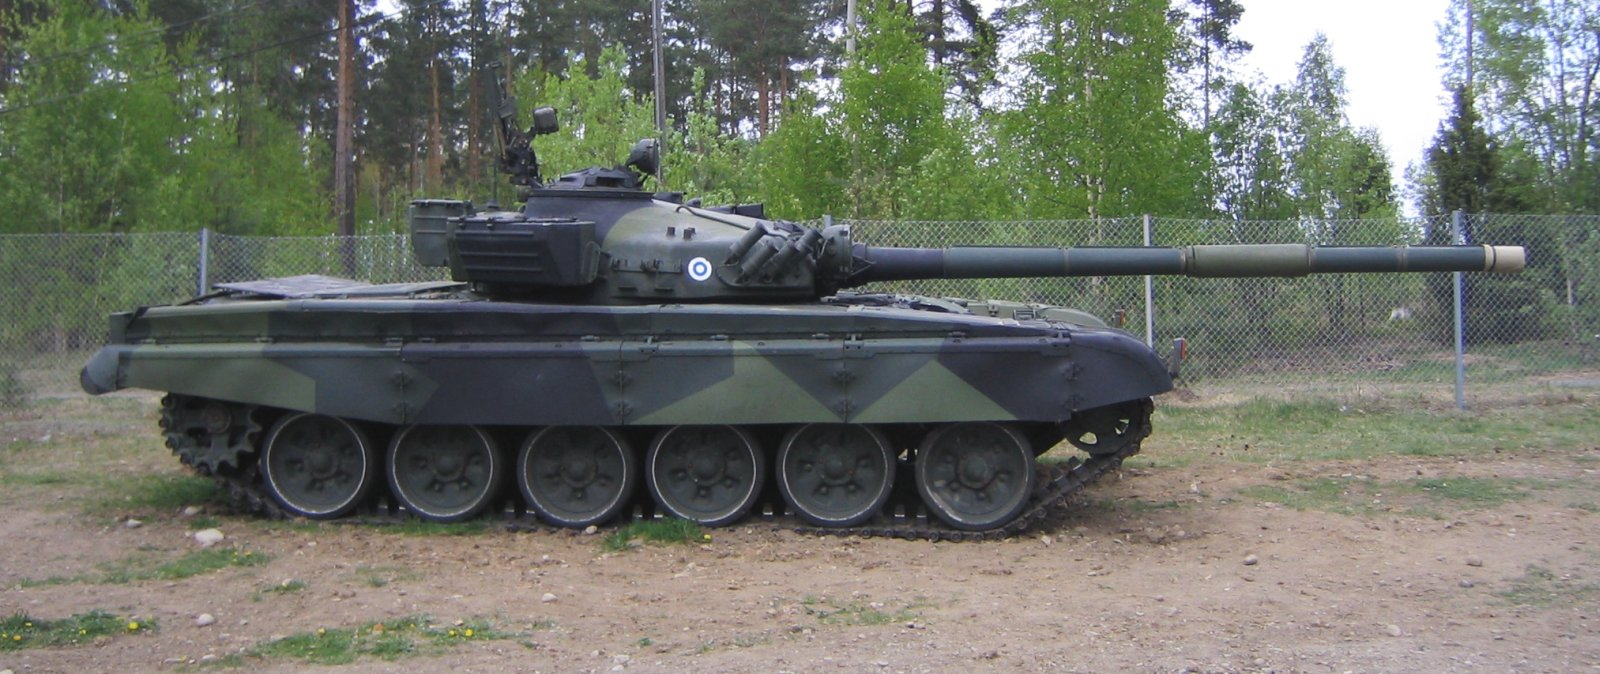 Finnish Army T 72 Ps264 202 side